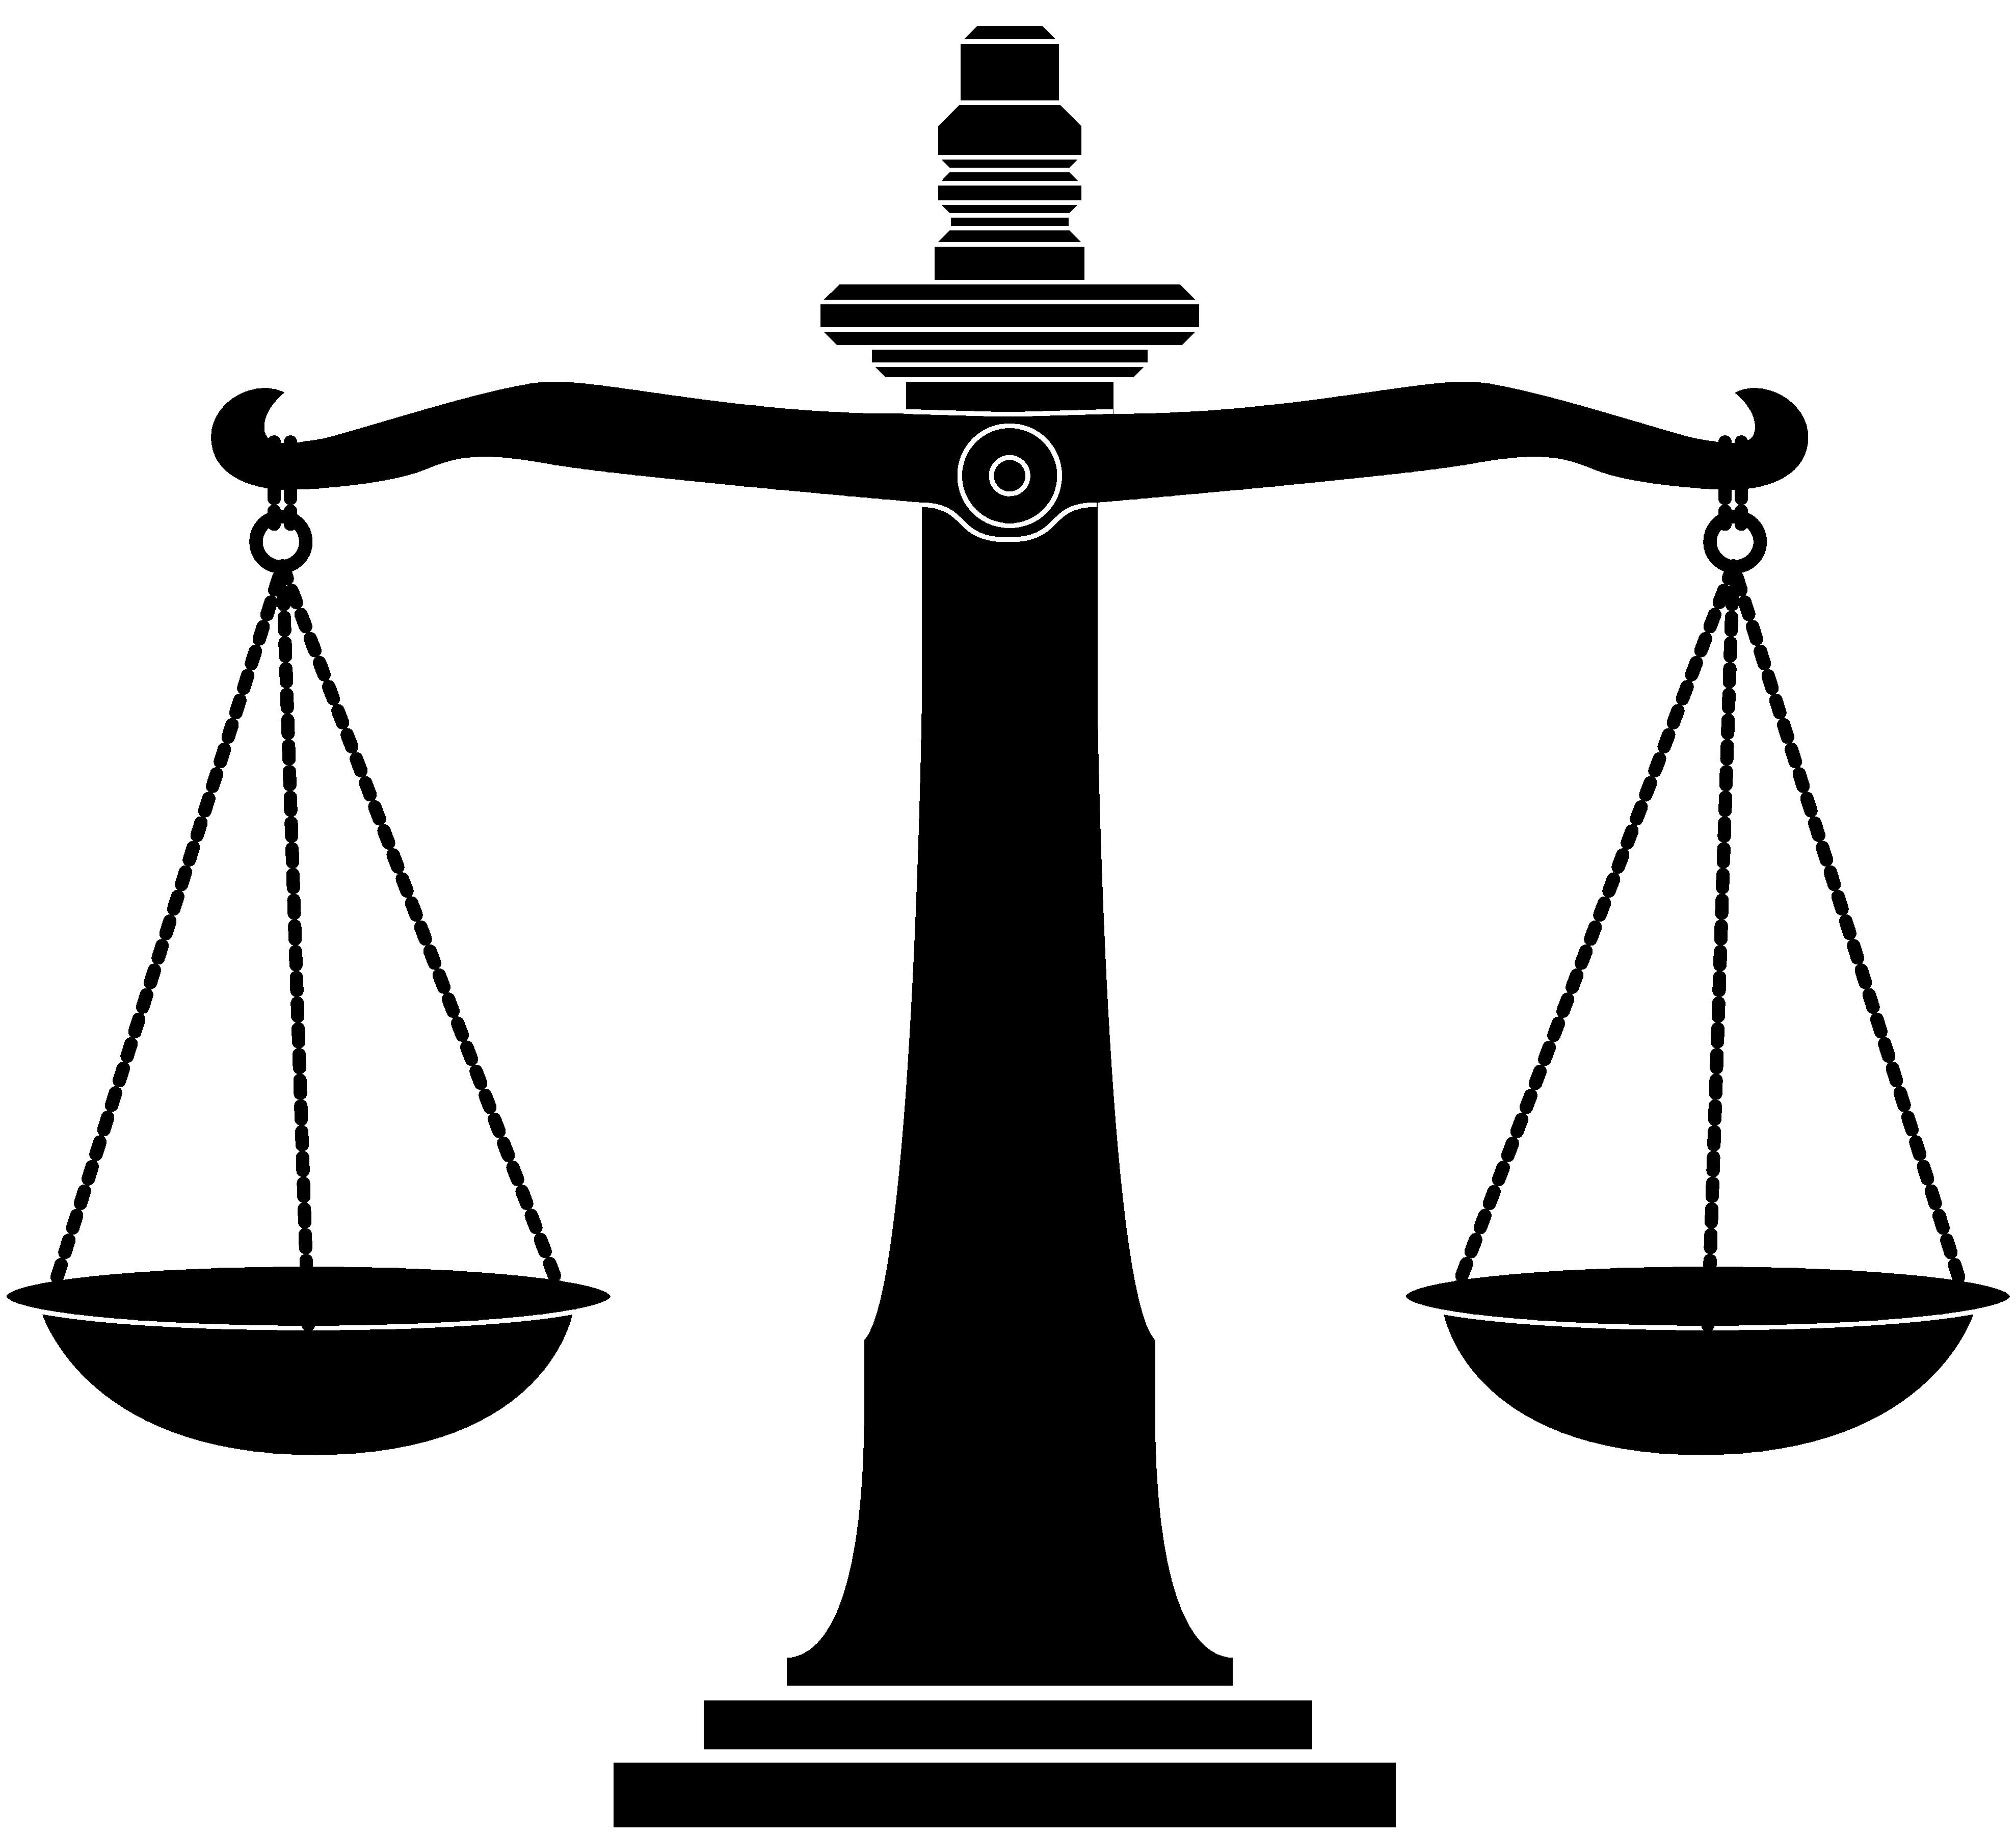 legal scales clipart - photo #26